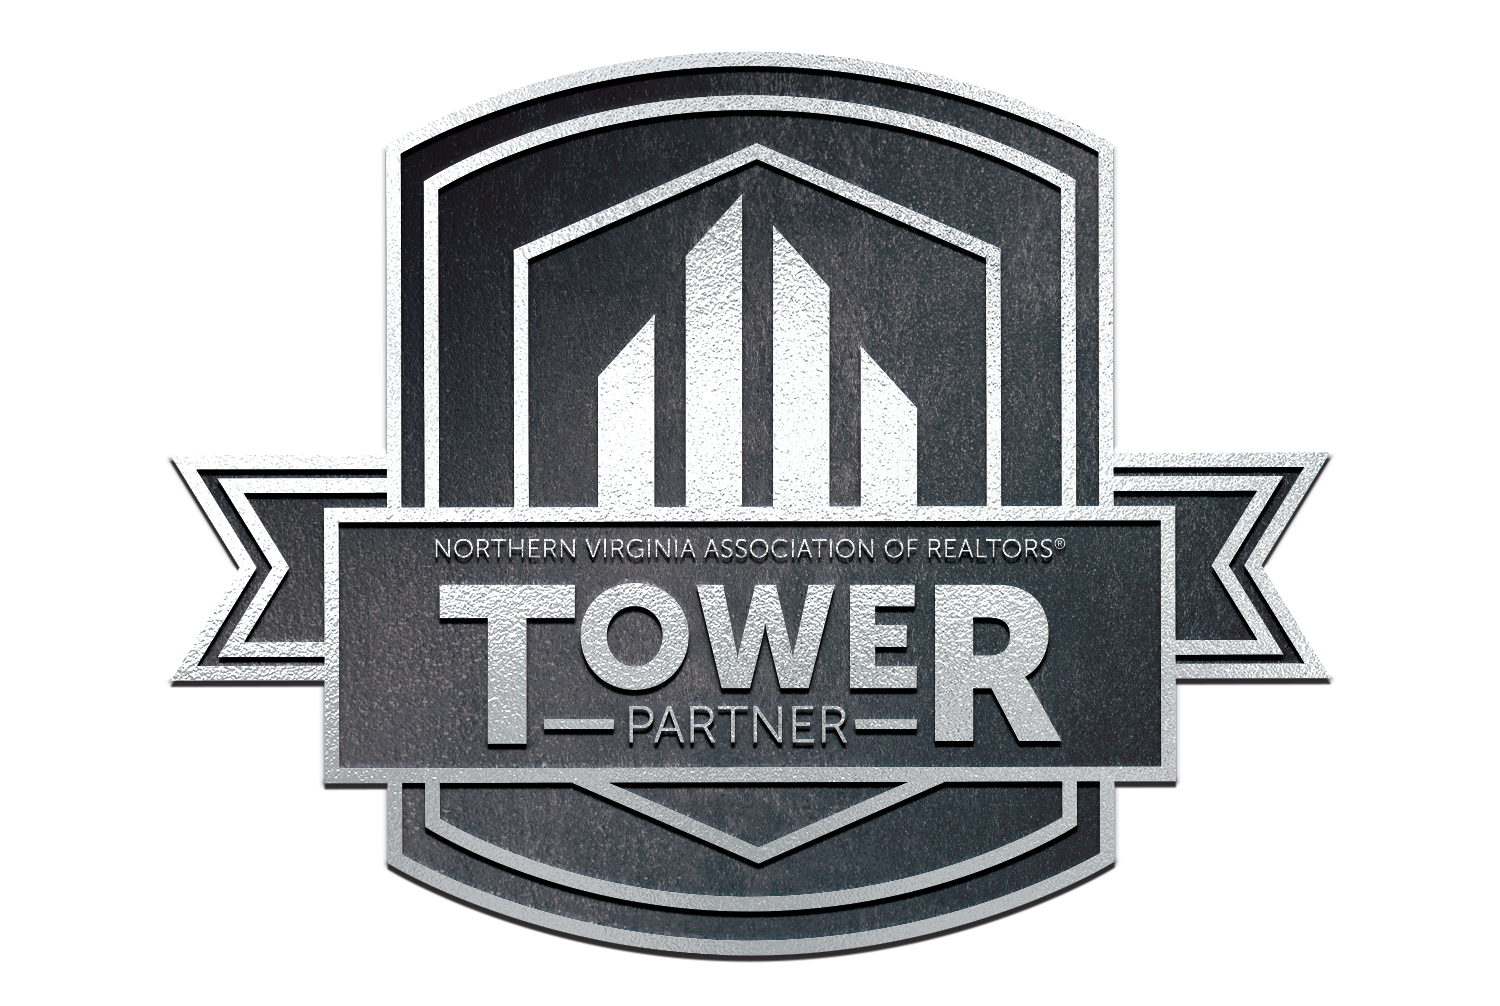 tower partner logo